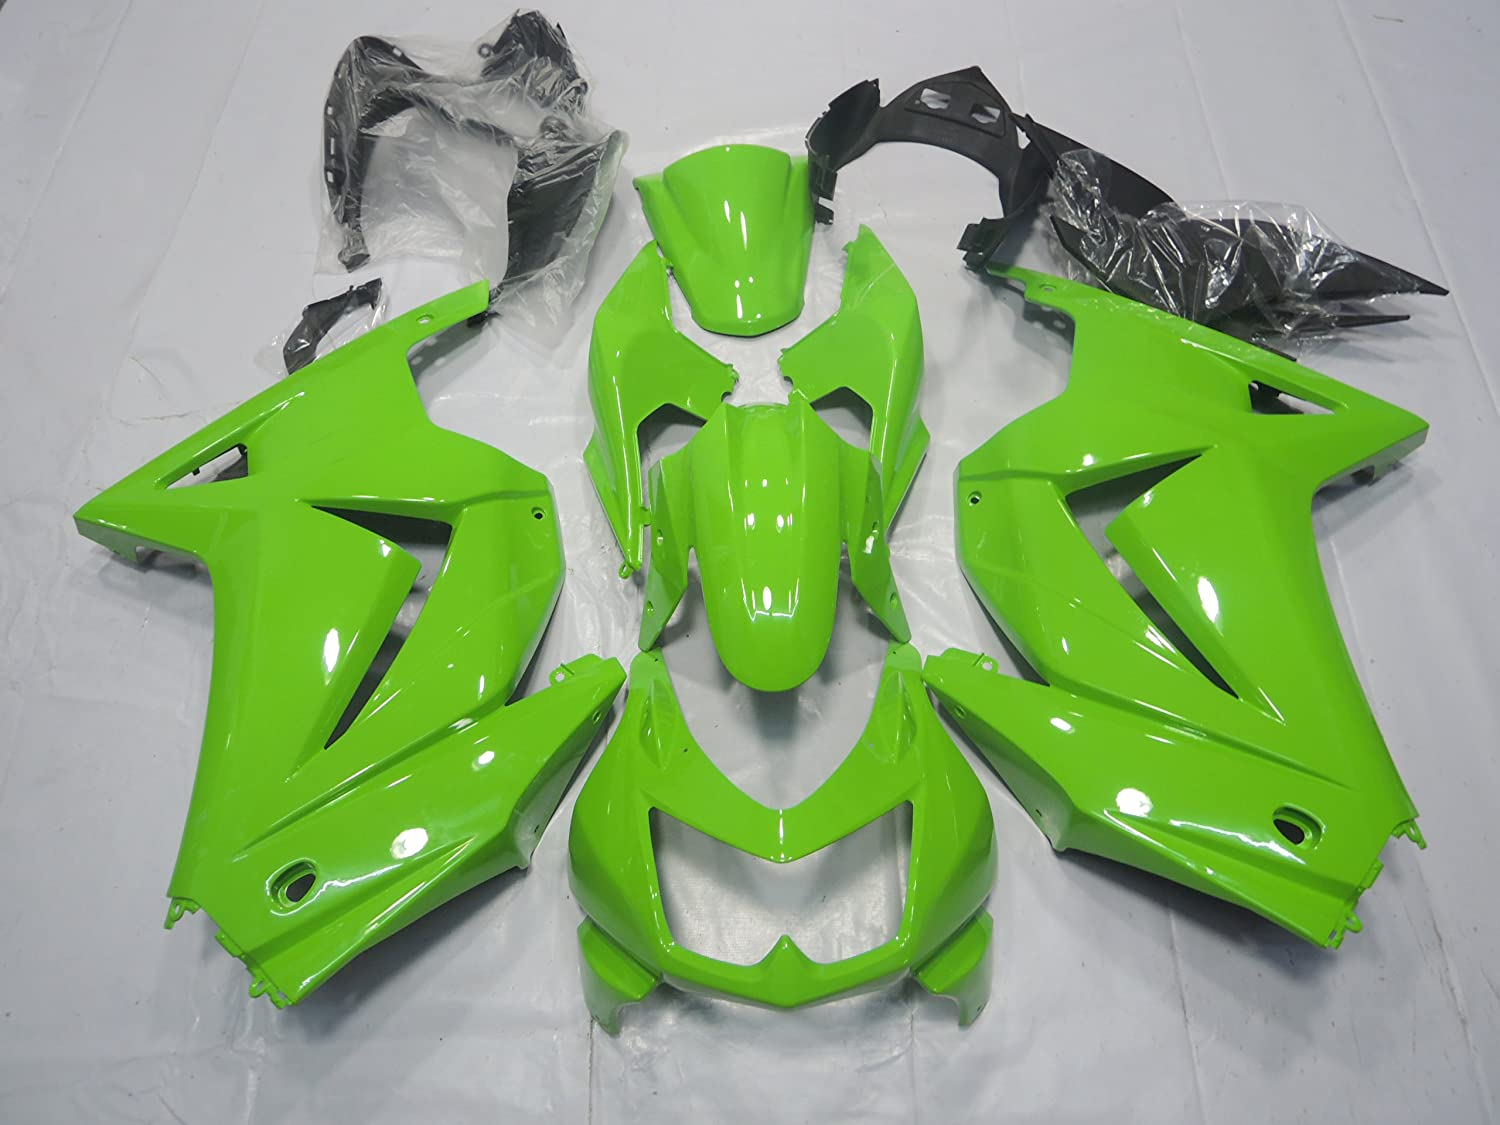 ZXMOTO K0208GRN ABS Motorcycle bodywork Fairing Kit for Kawasaki Ninja 250R EX250 2008 2009 2010 2011 2012 Green - (Pieces/kit: 15)